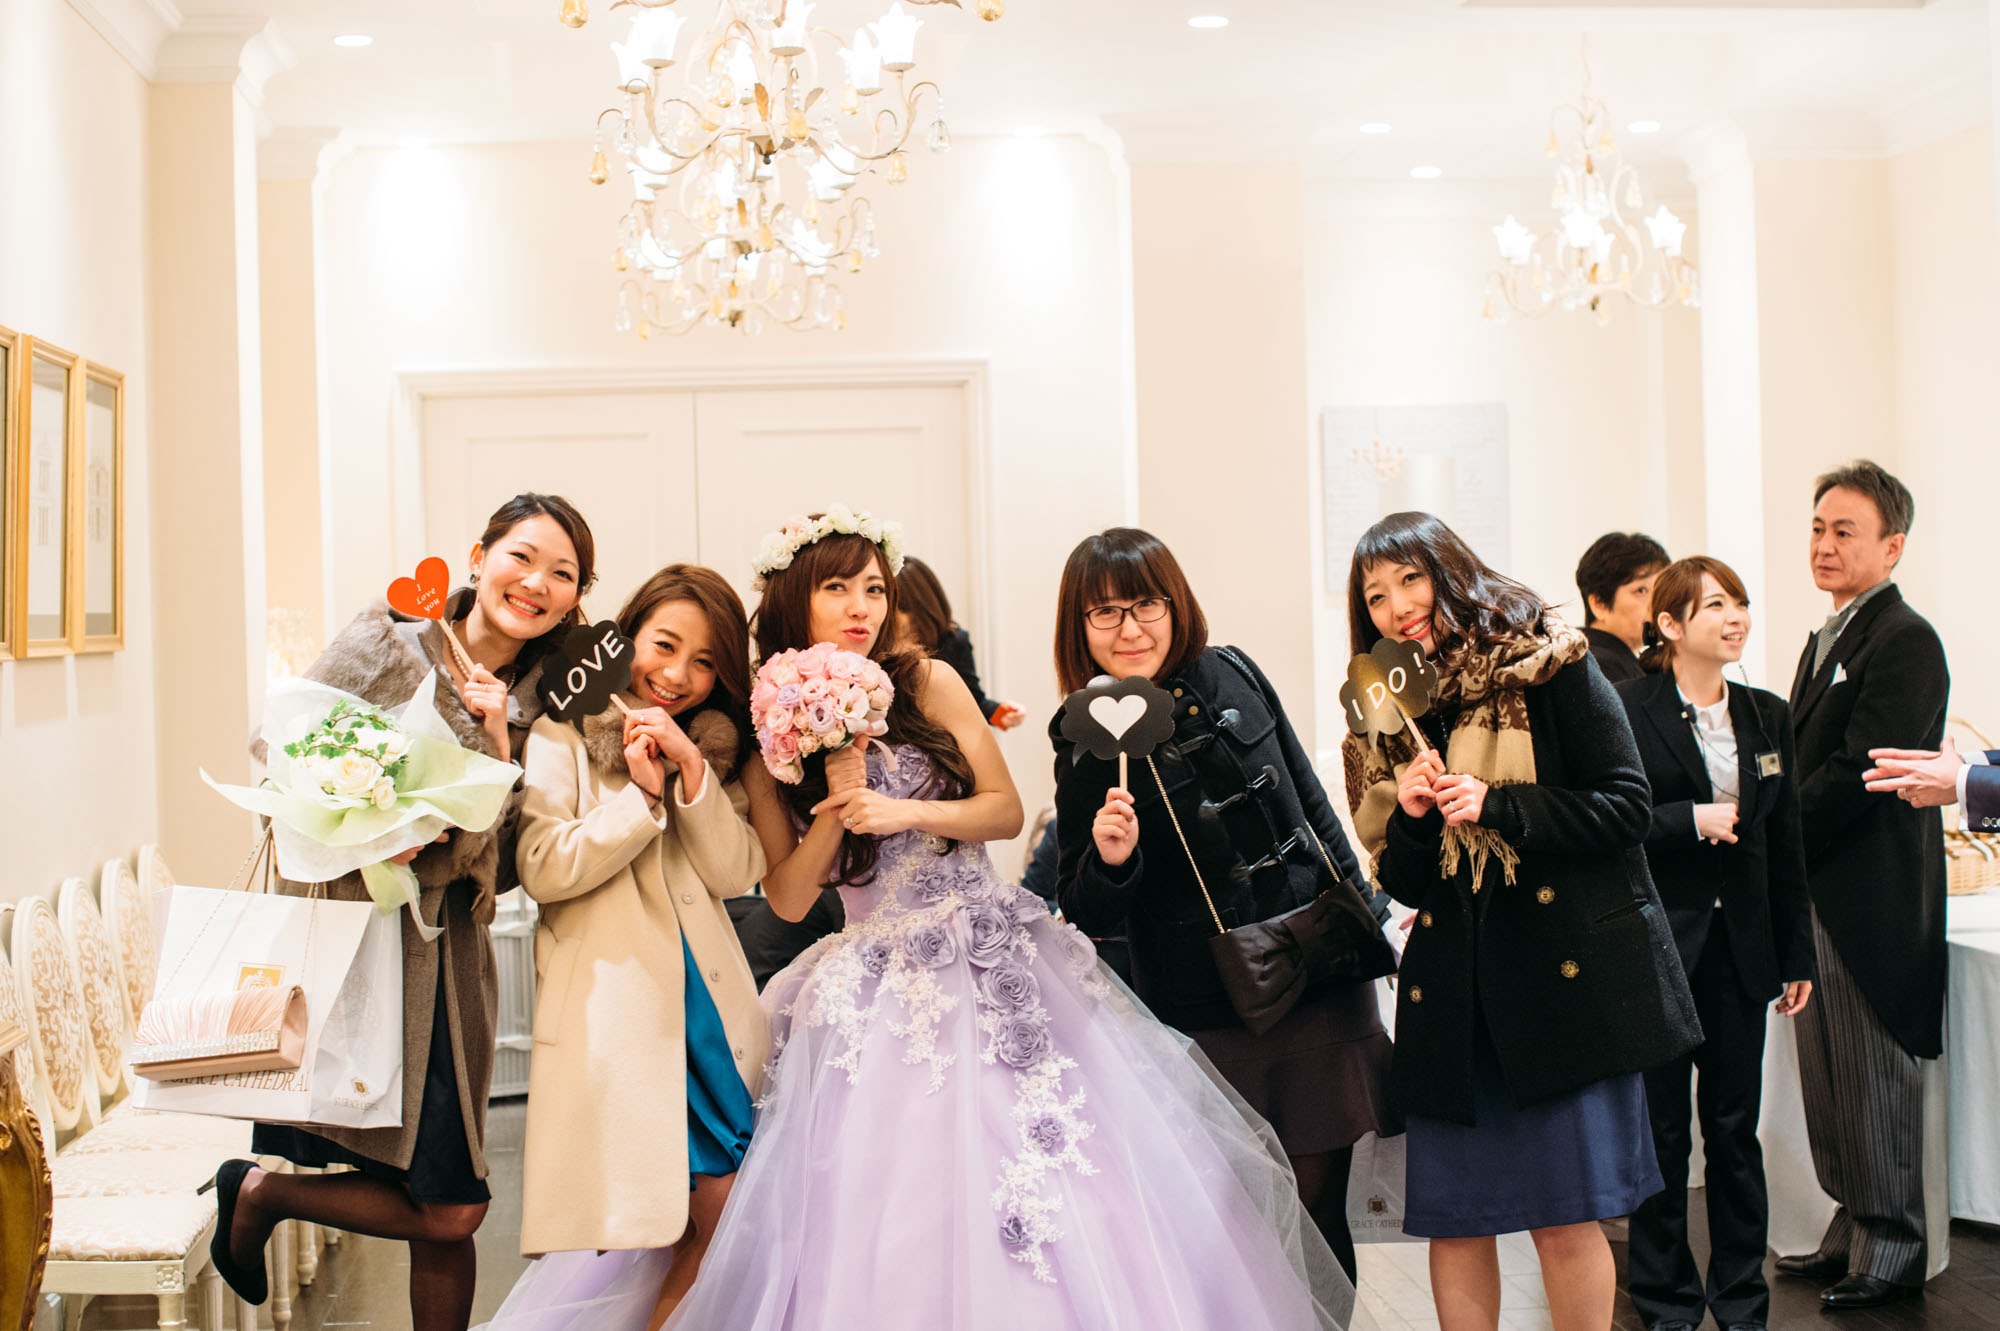 nagoya wedding176